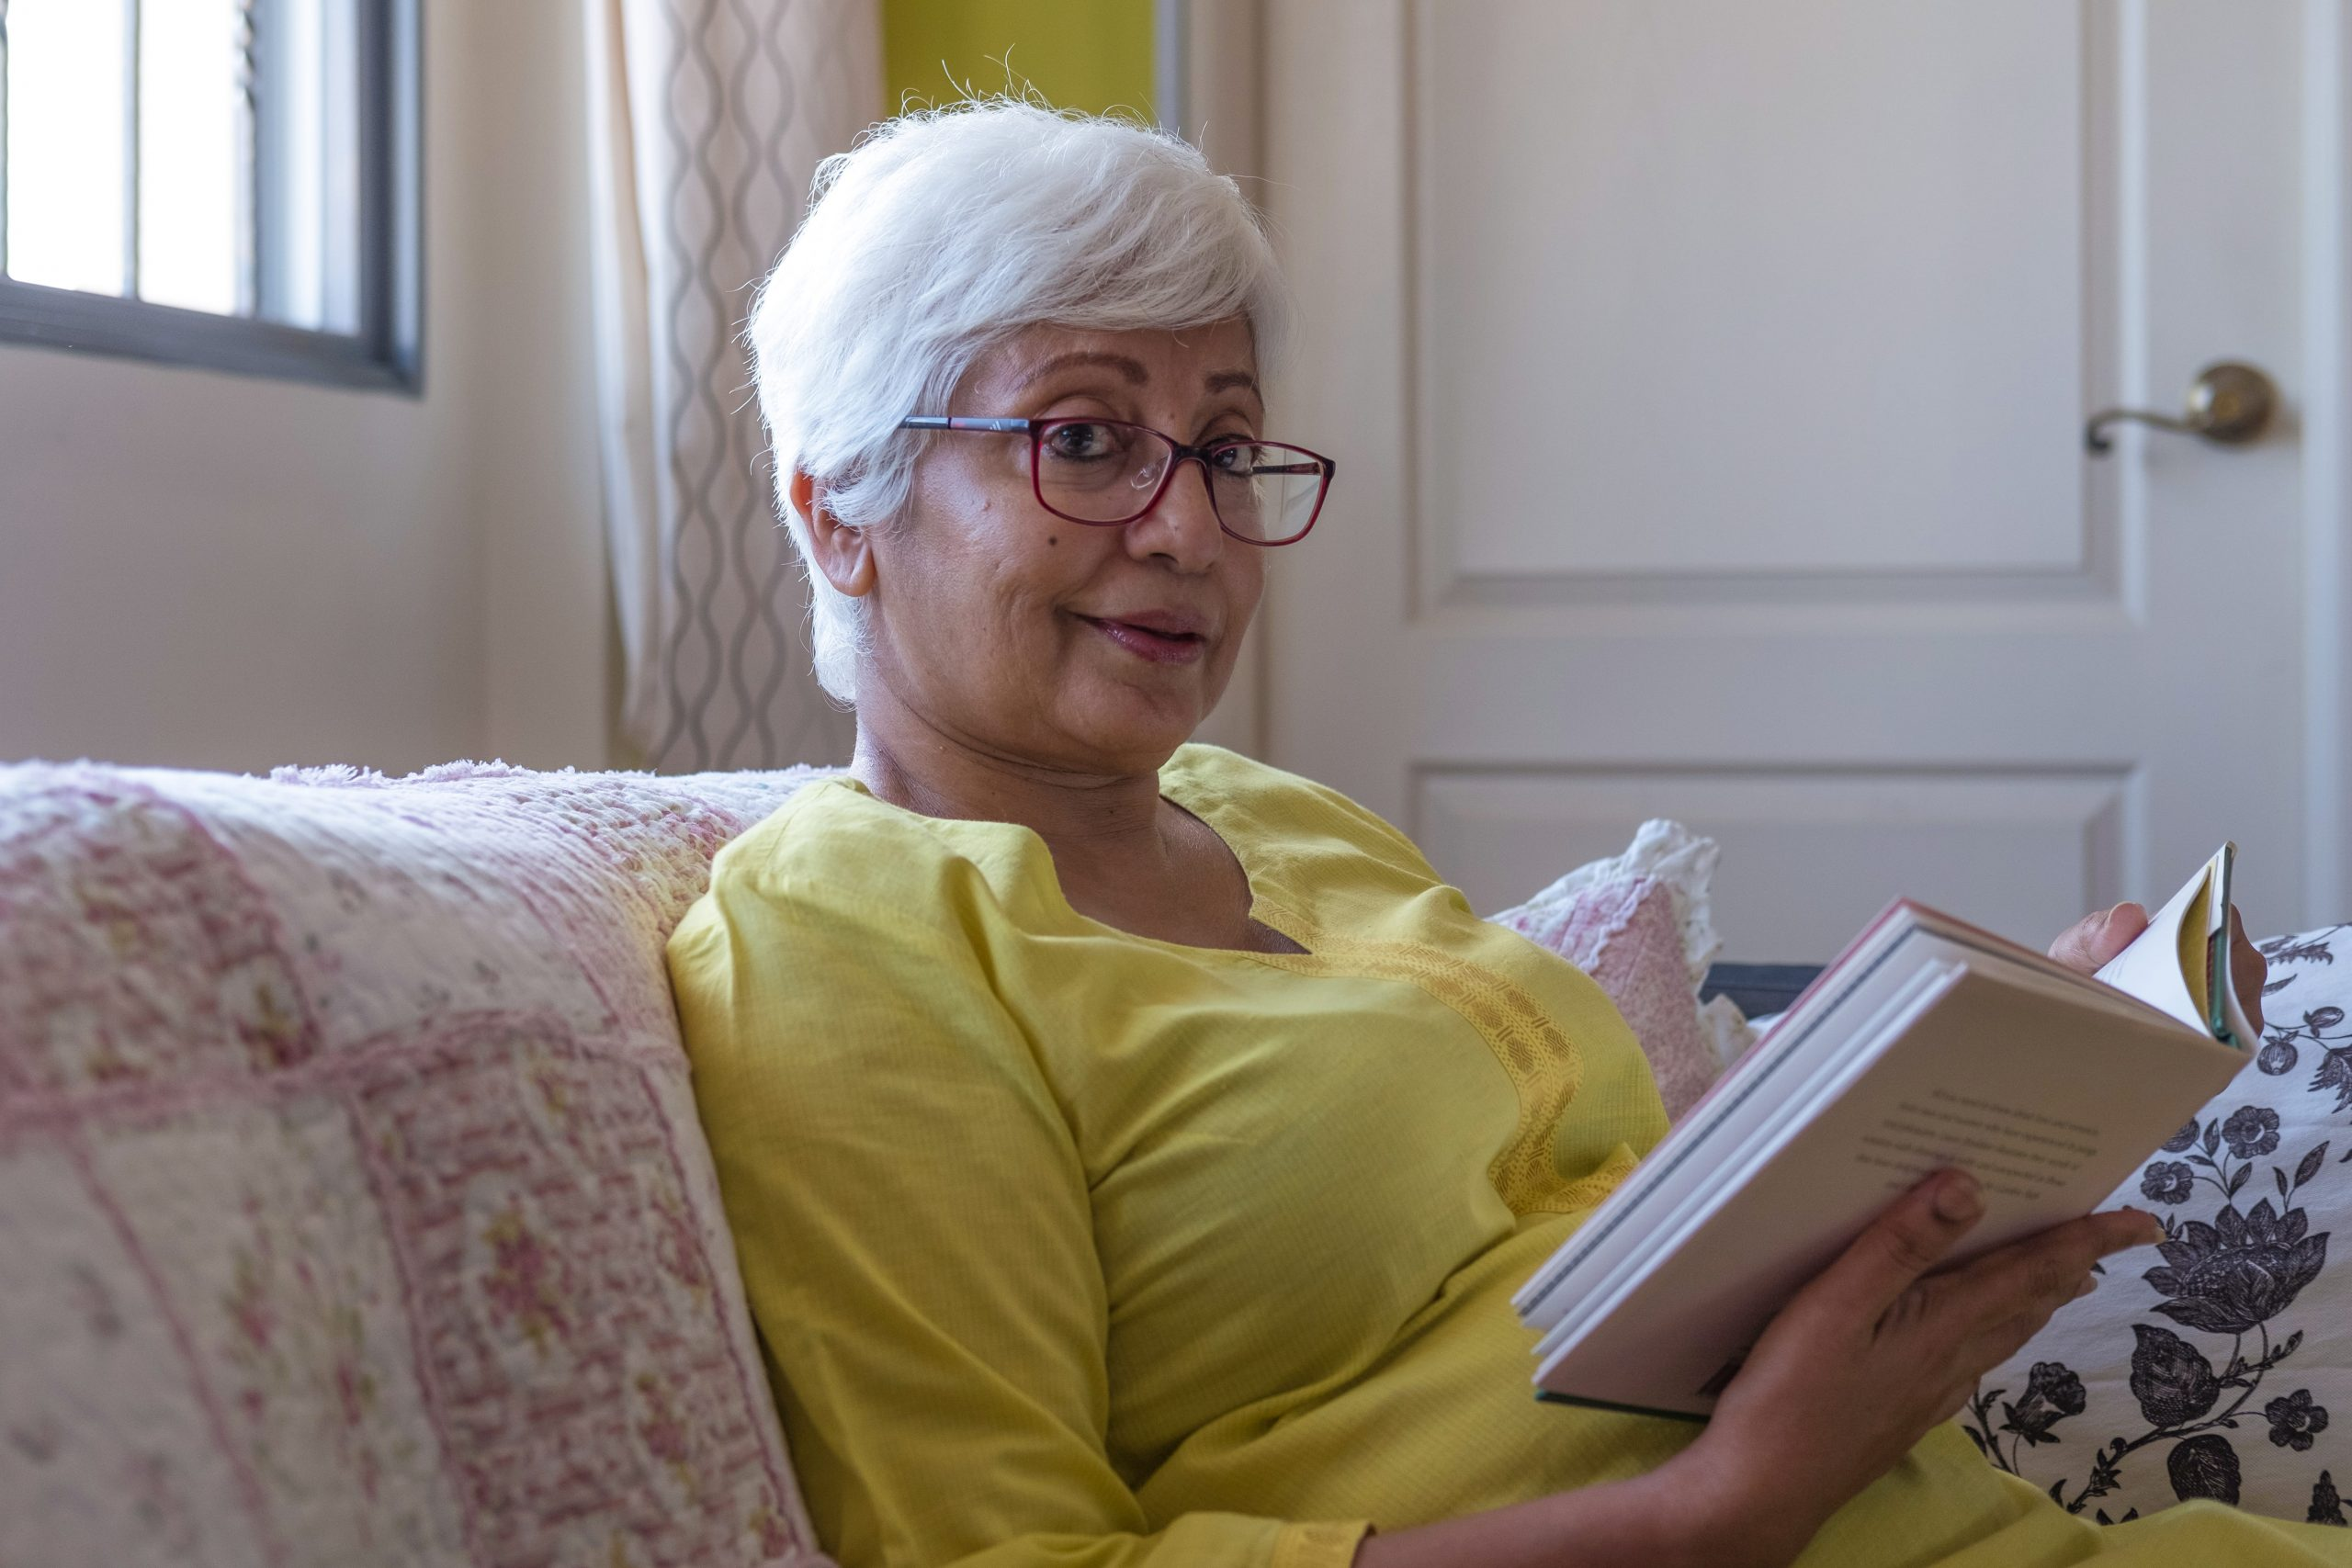 Activities For Seniors - Older Woman Reading A Book While Sitting On The Sofa